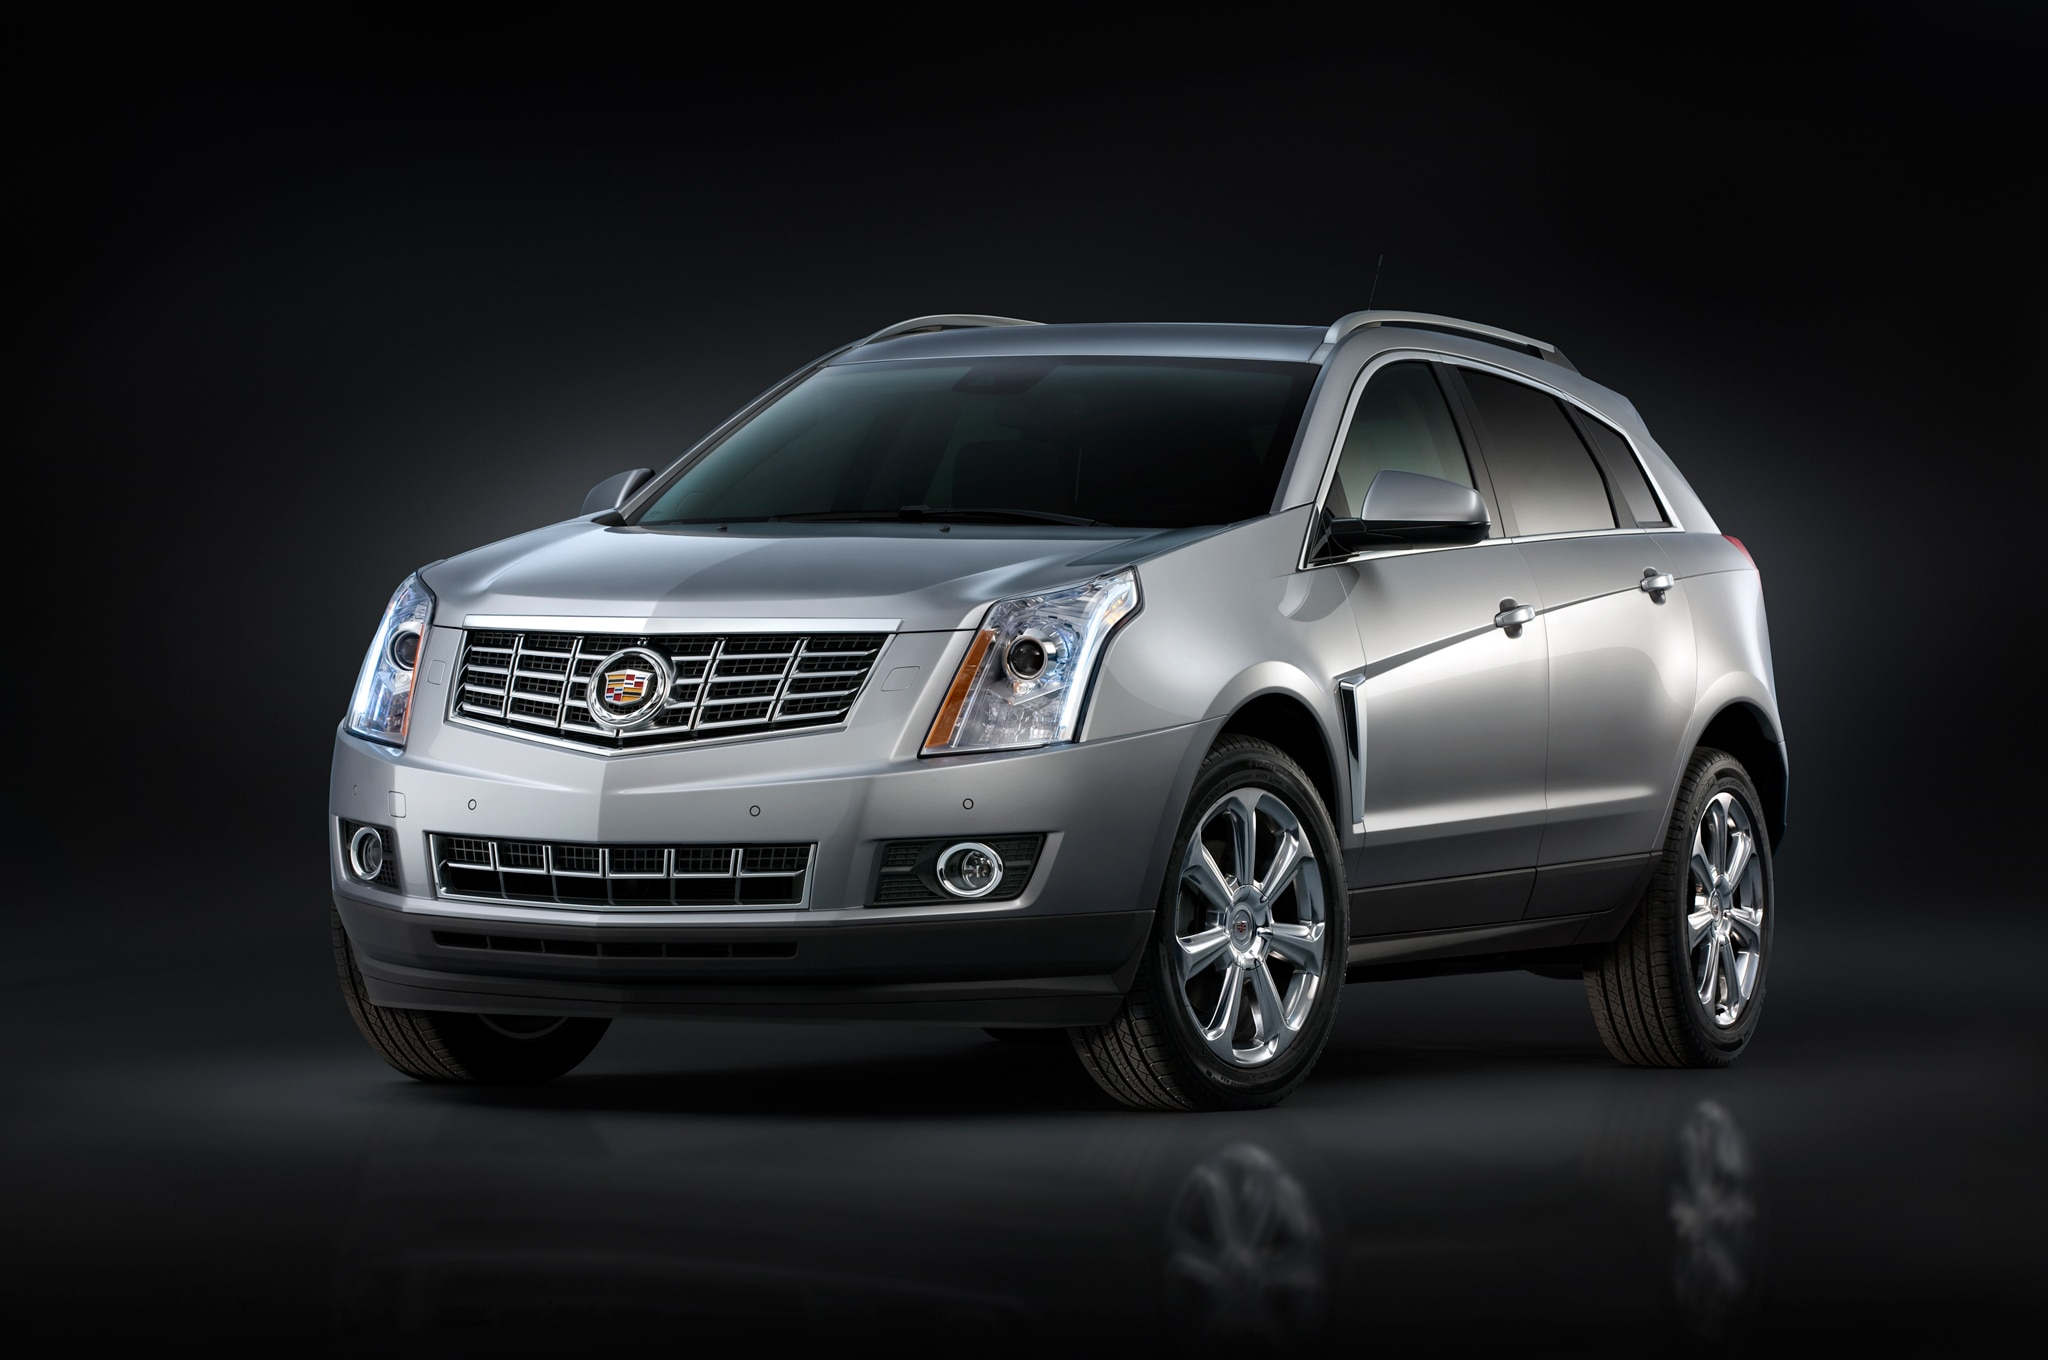 2013 Cadillac SRX Front Three Quarters View1